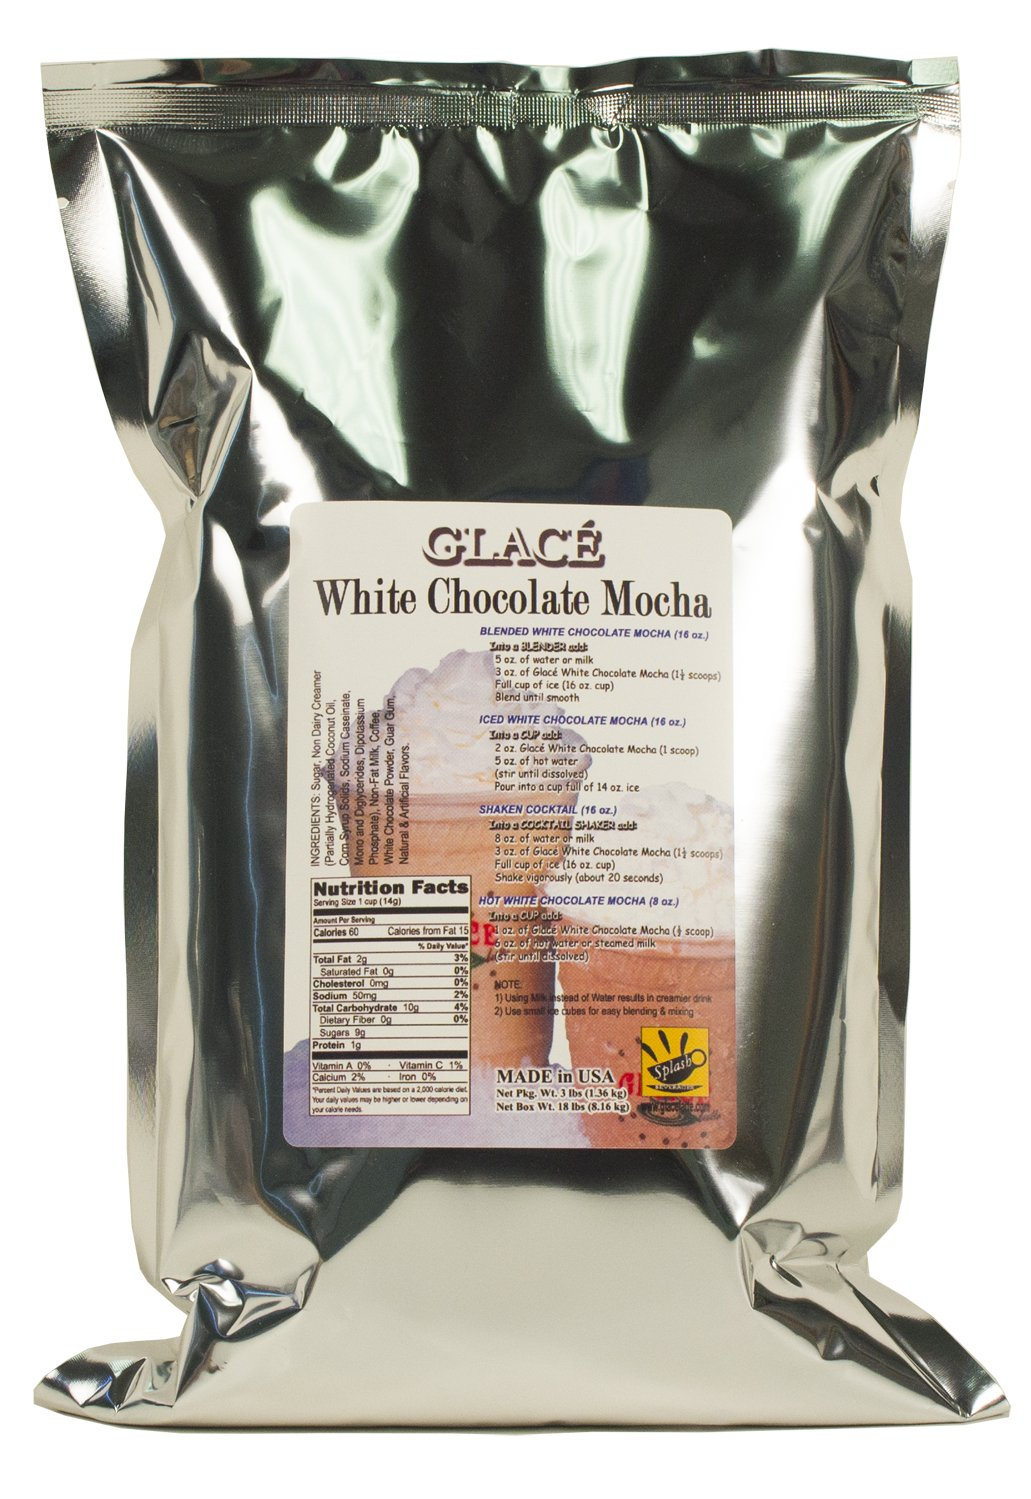 Glace White Chocolate Mocha (3-lb pack) by Unknown